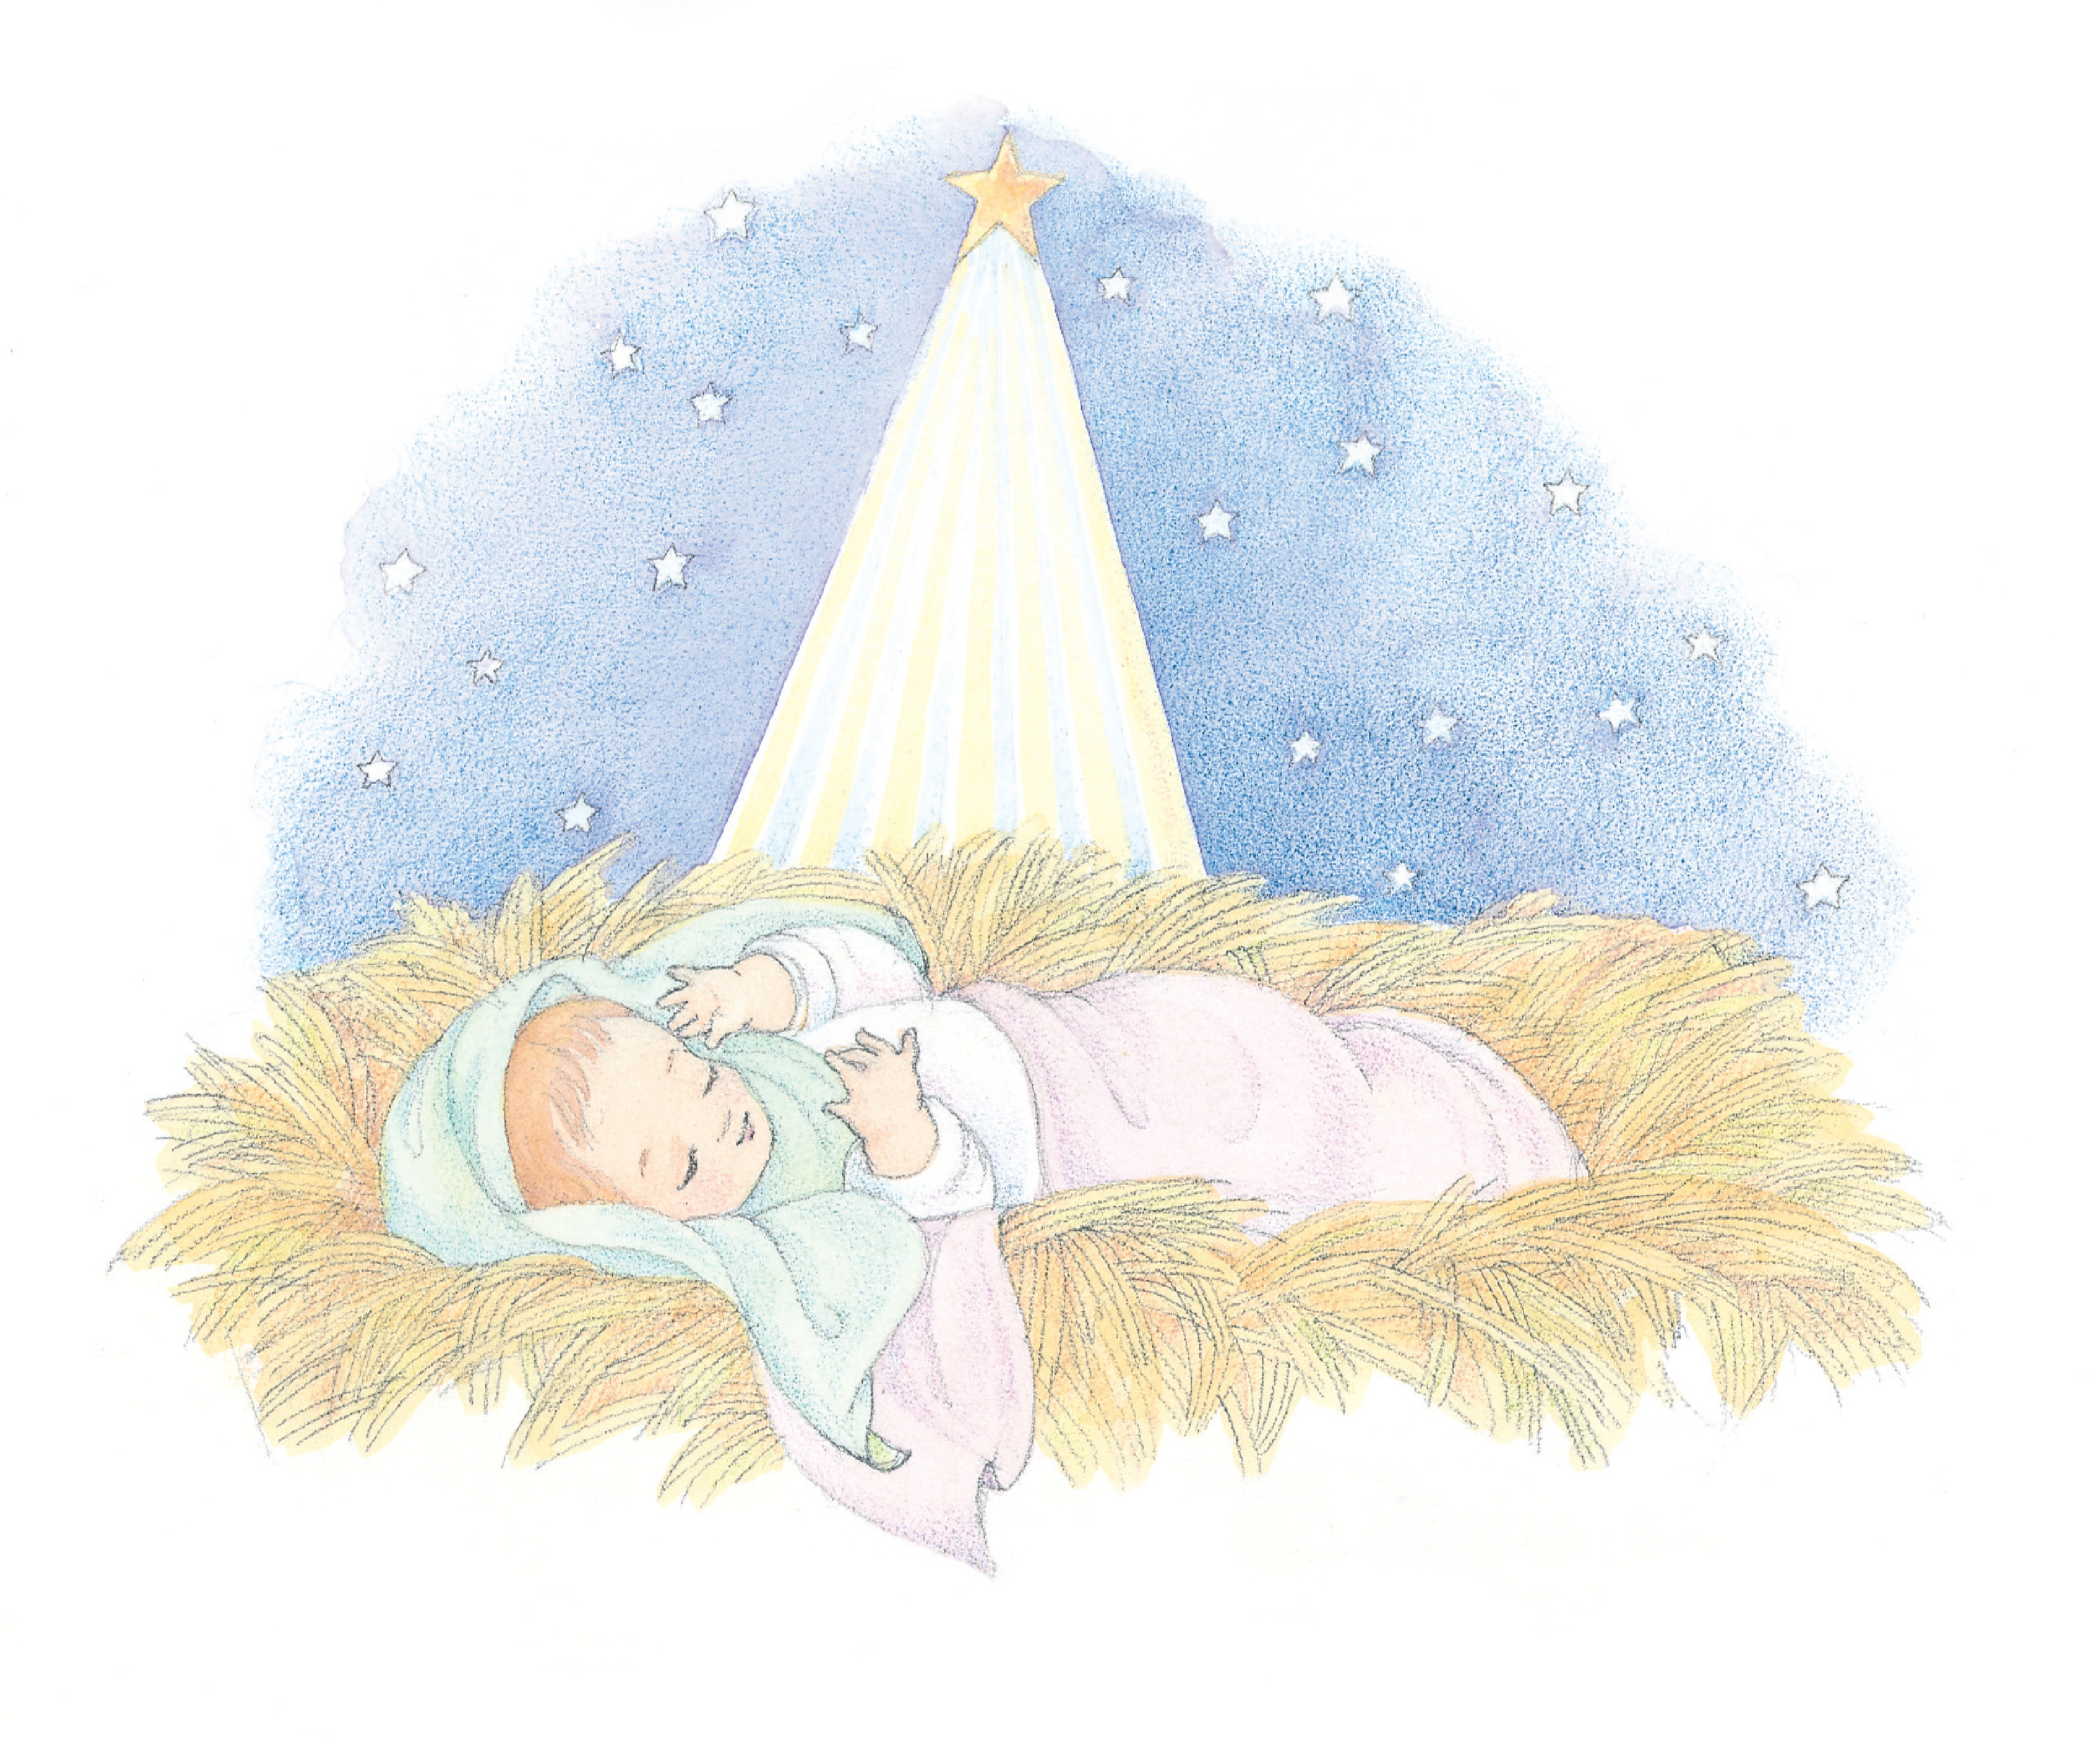 """The baby Jesus asleep in a manger. From the Children's Songbook, page 42, """"Away in a Manger""""; watercolor illustration by Phyllis Luch."""